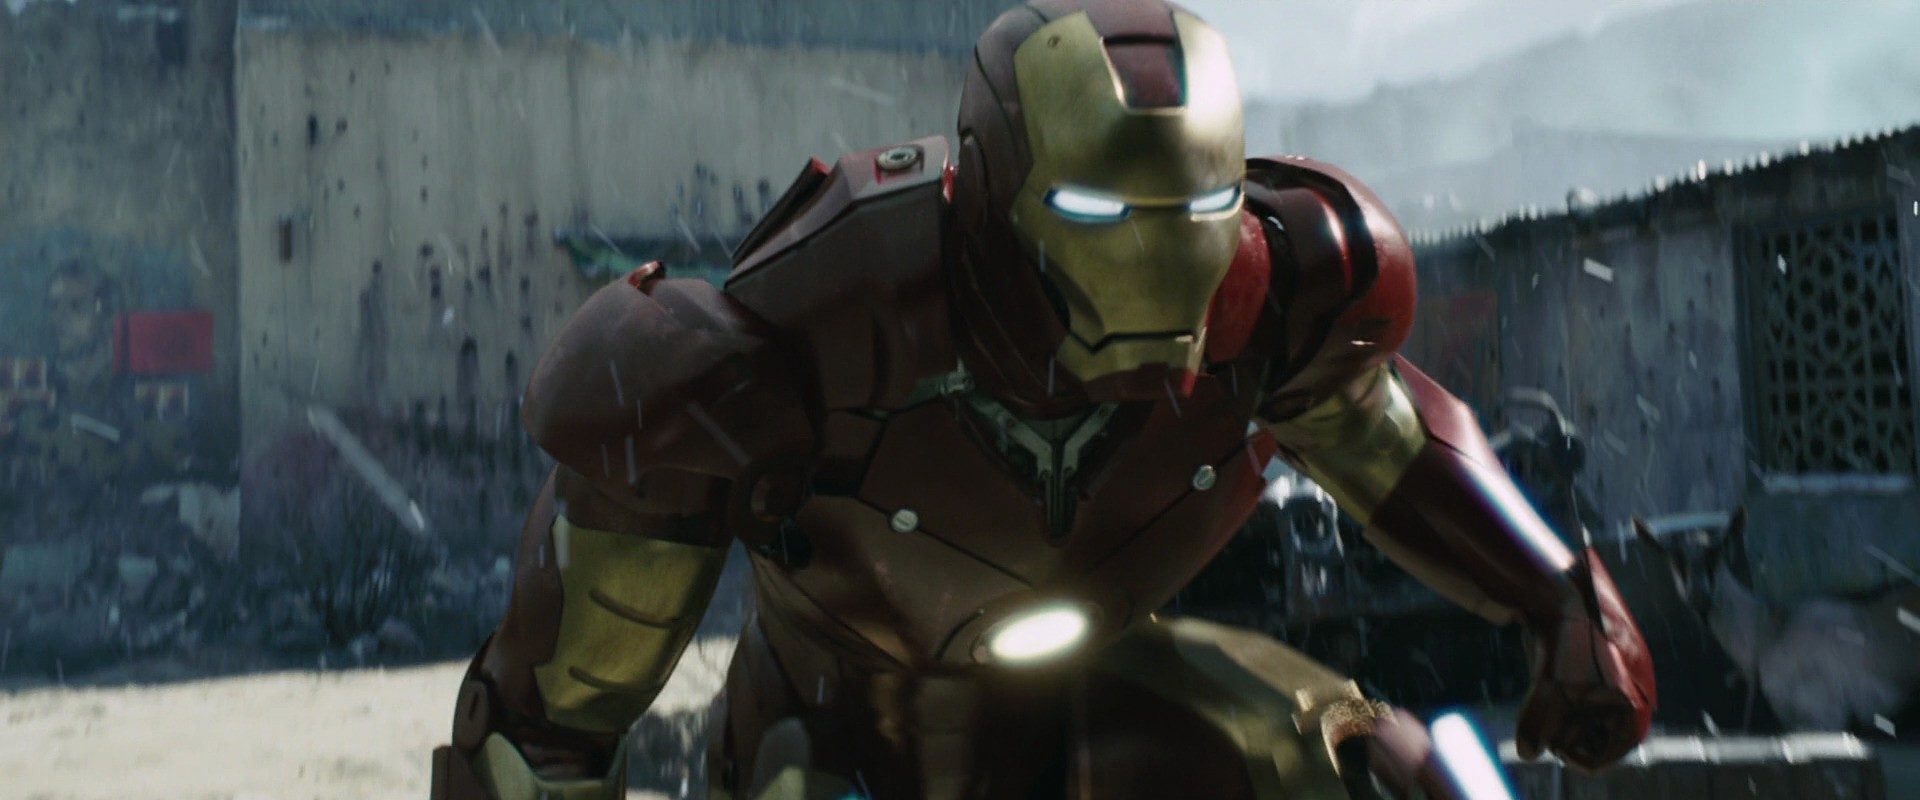 http://caps.pictures/200/8-iron-man1/full/iron-man1-movie-screencaps.com-9213.jpg